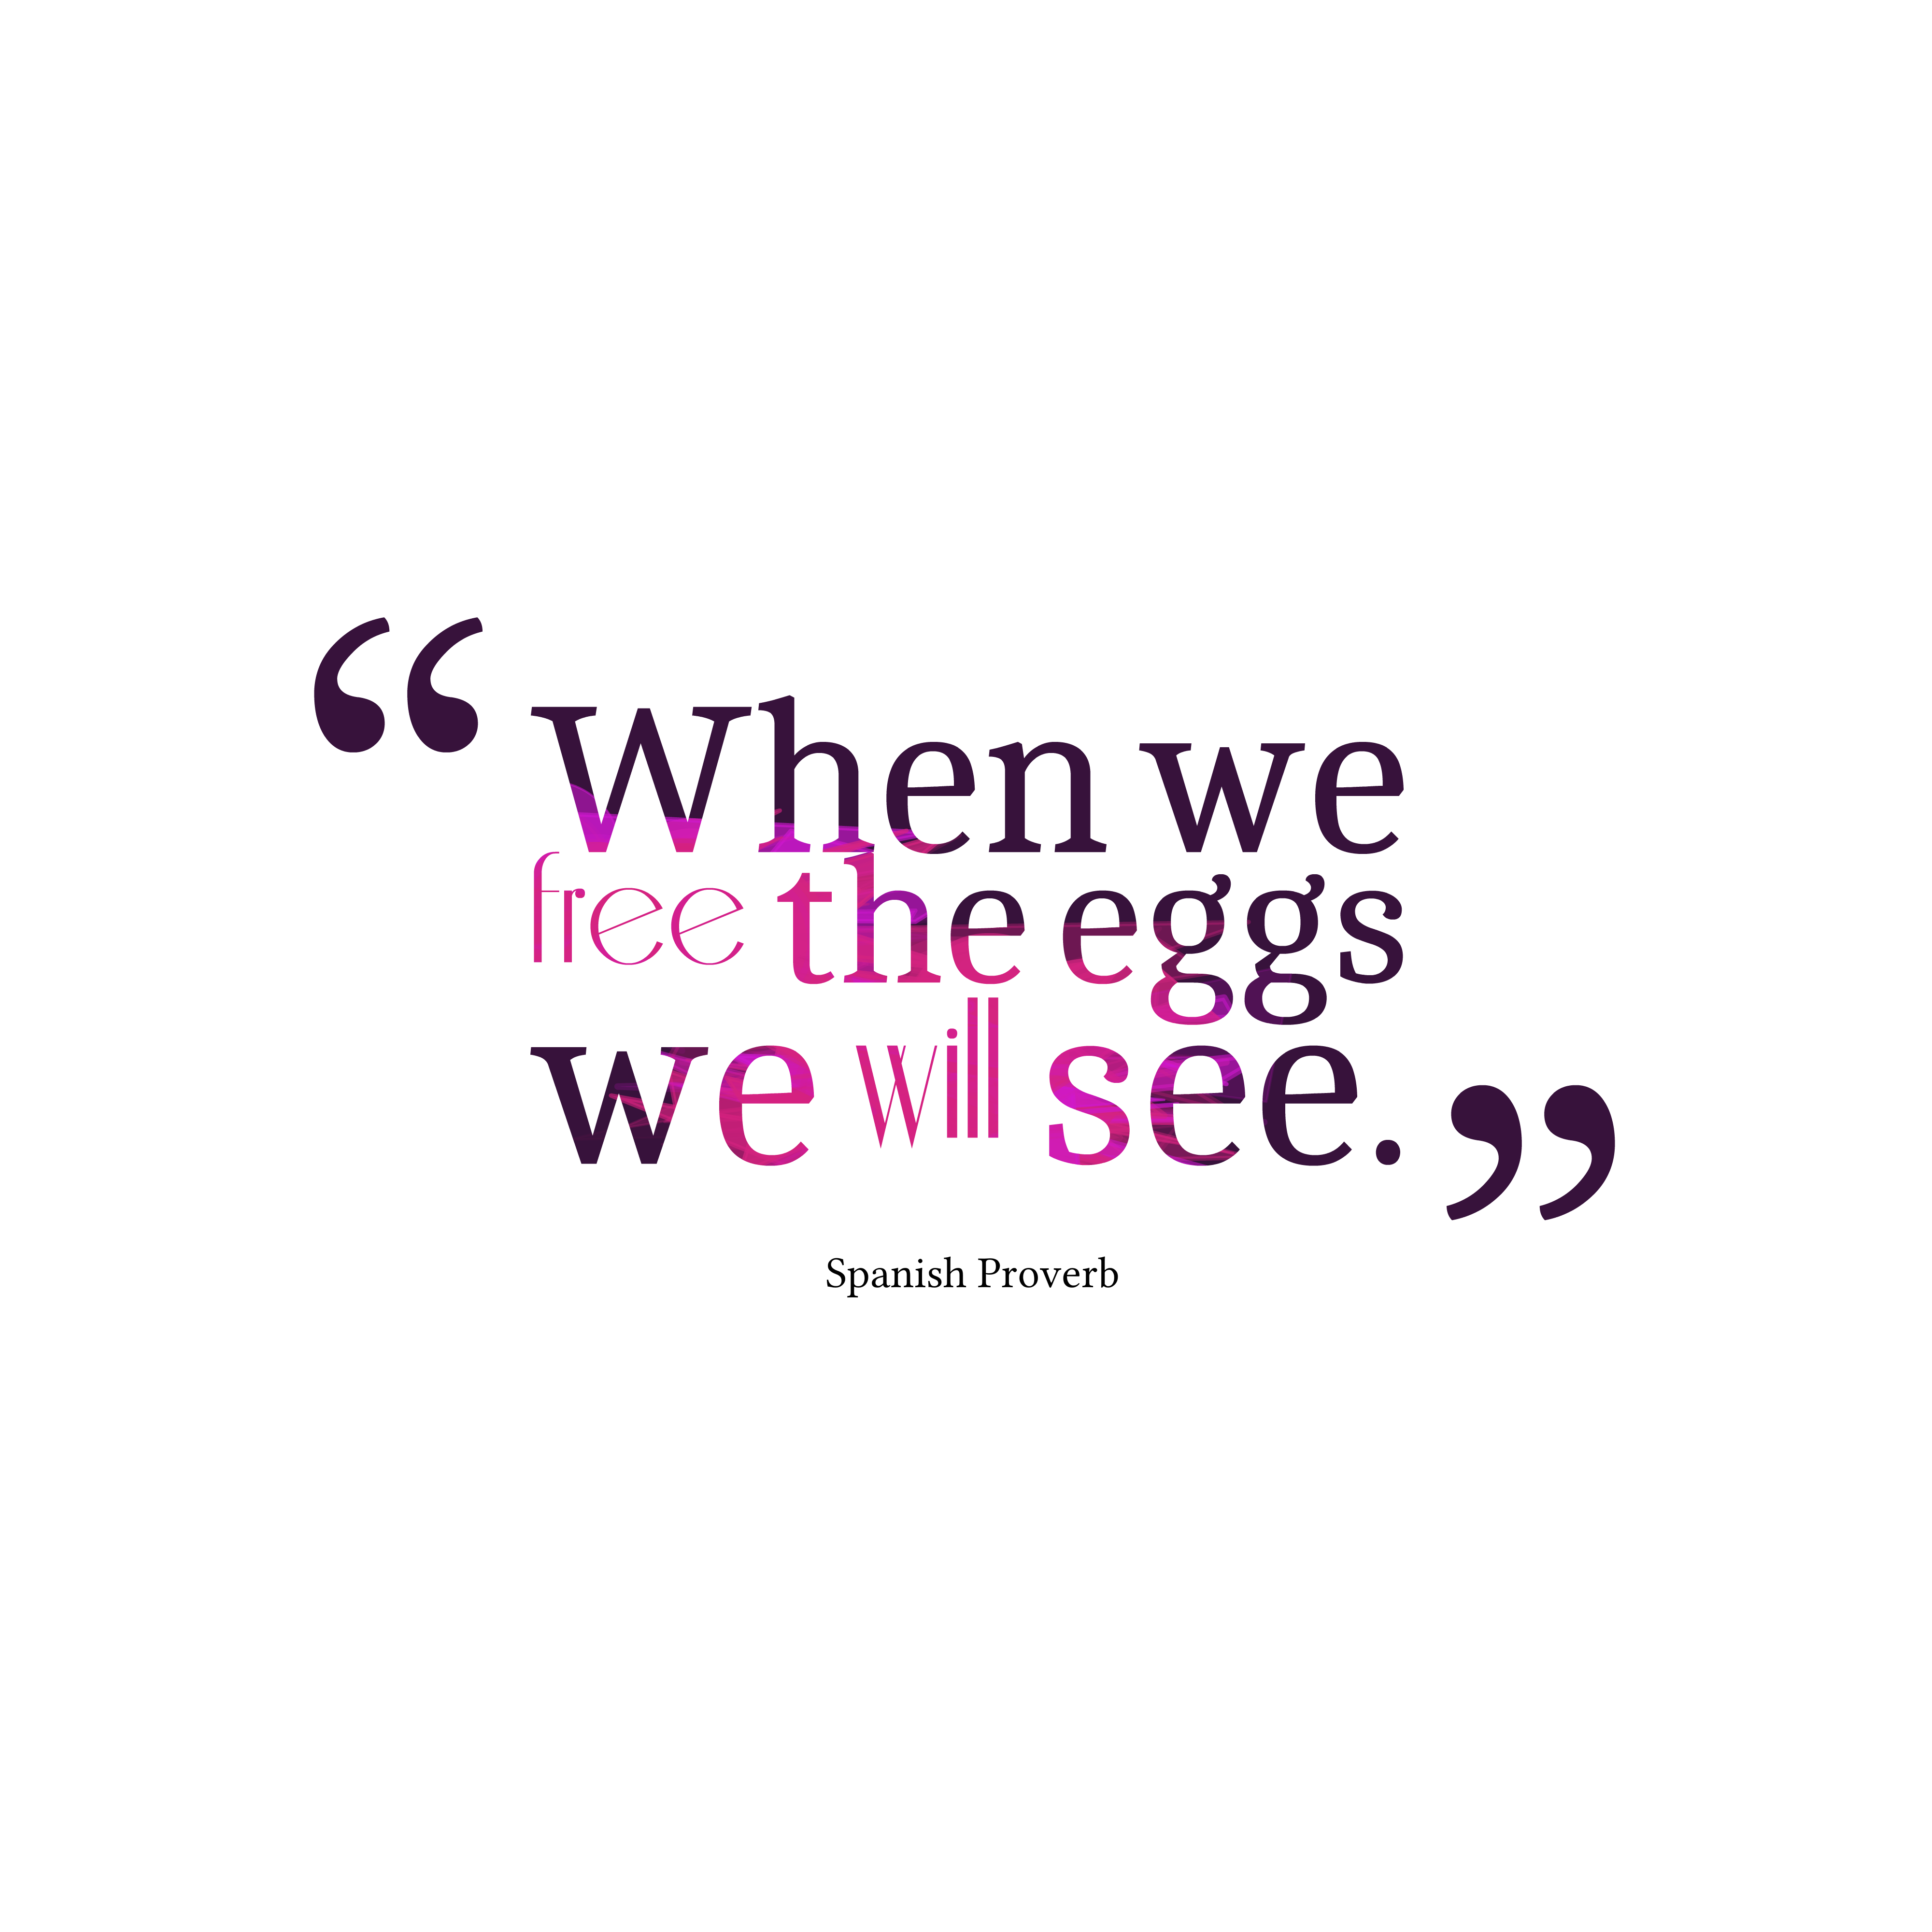 Quotes image of When we free the eggs we will see.